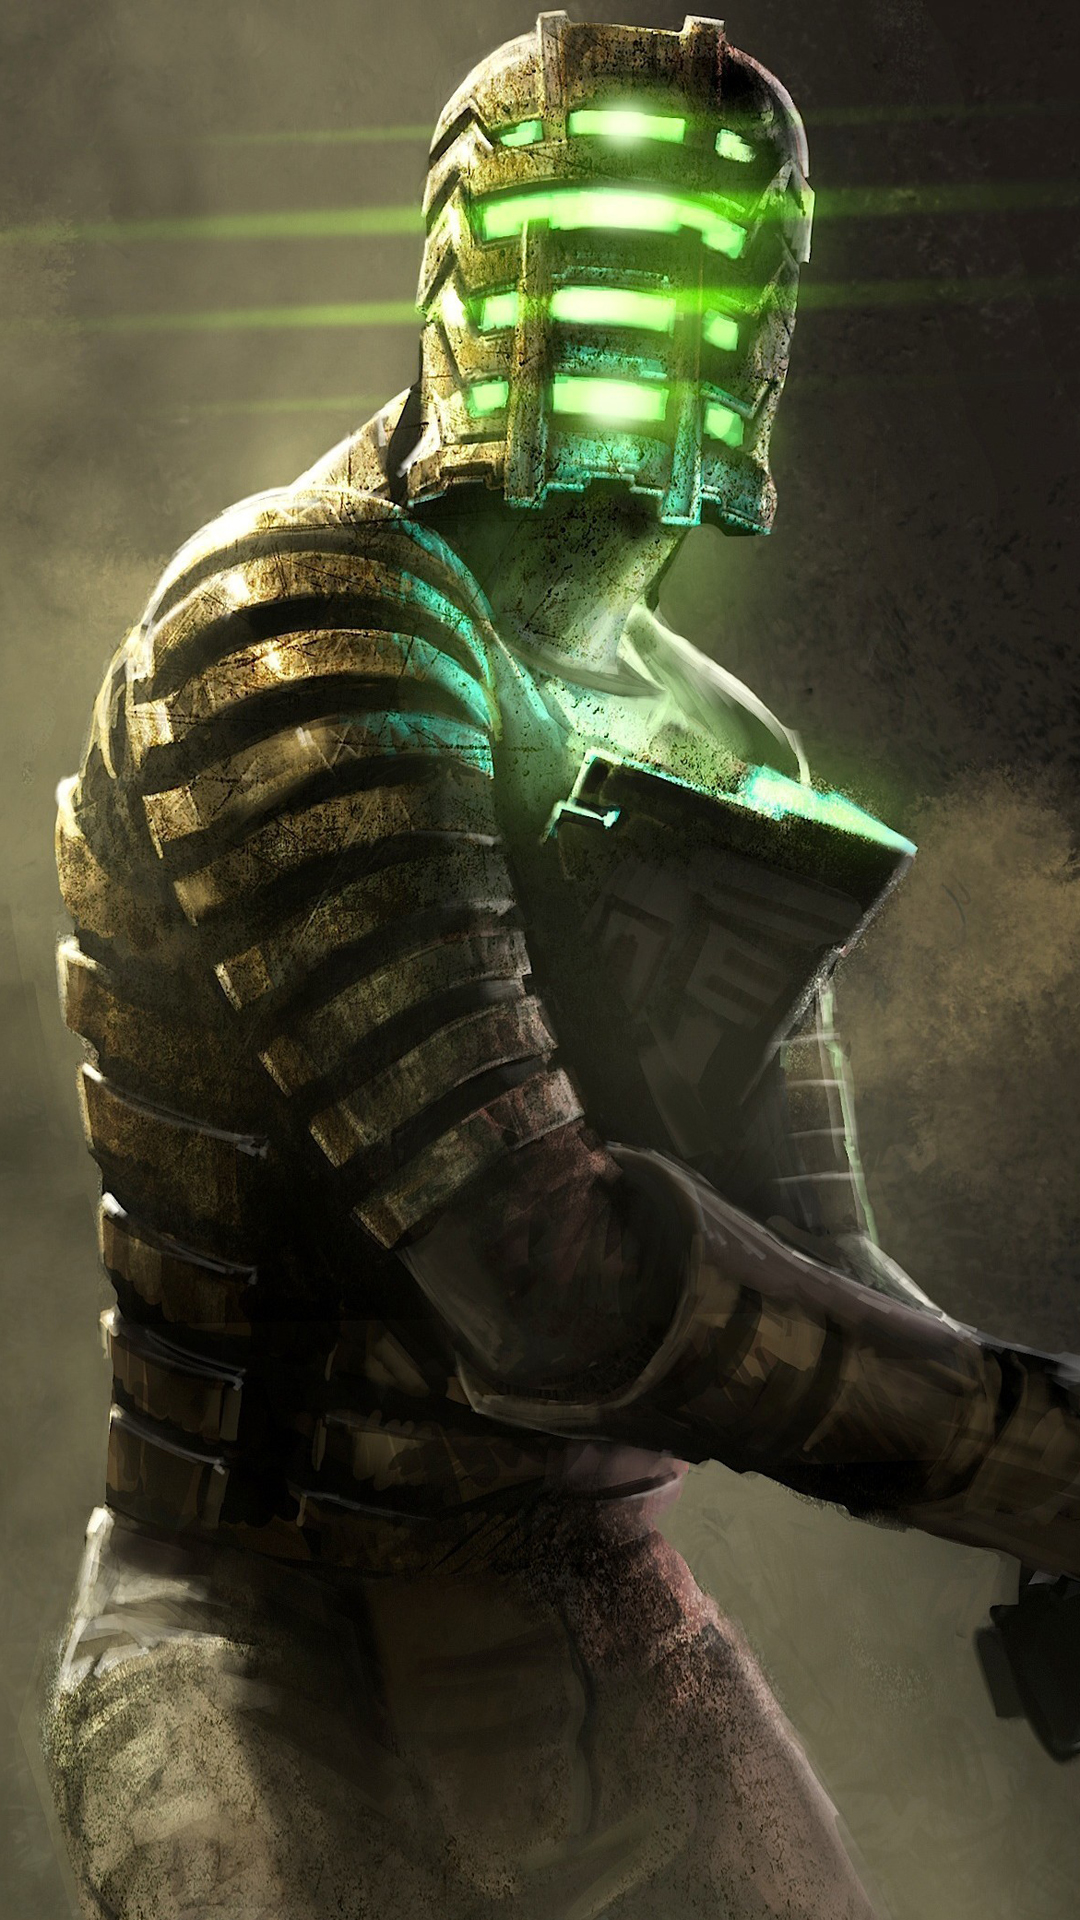 Dead Space Iii Best Htc One Wallpapers Free And Easy To